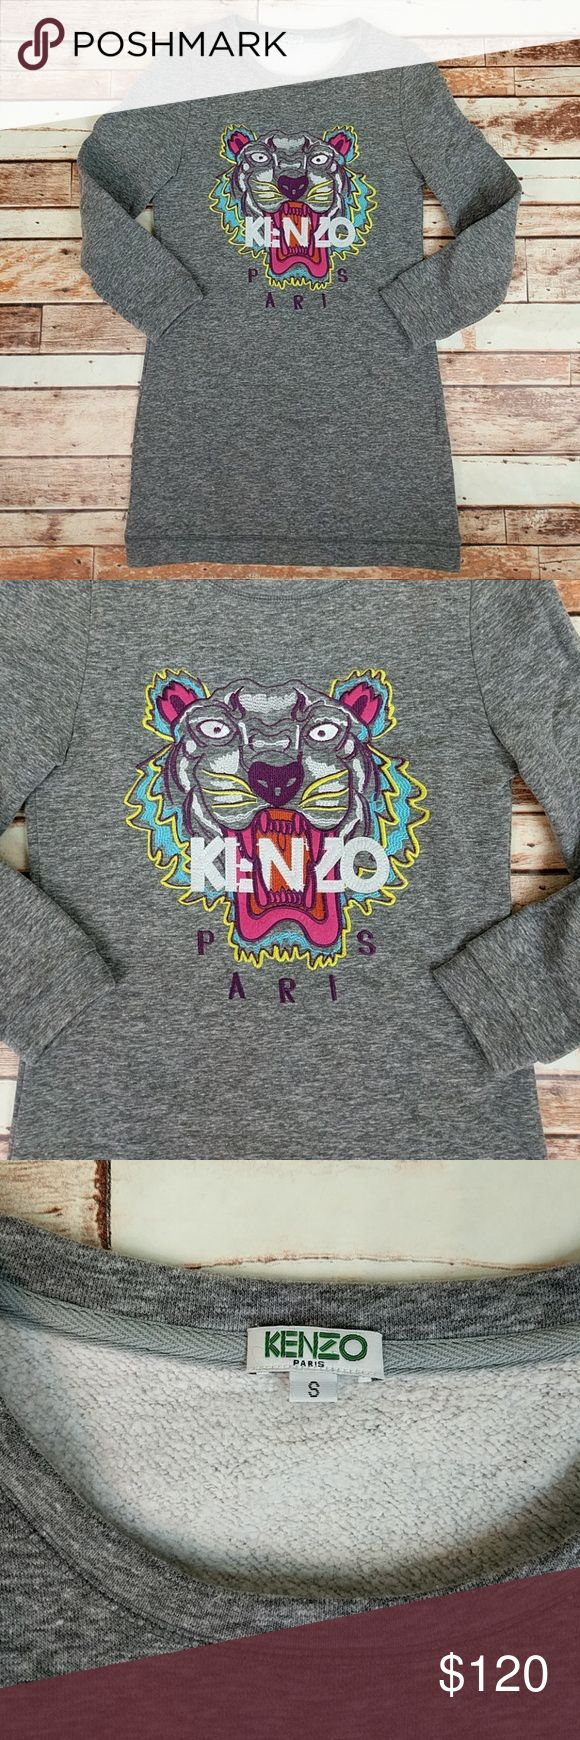 Kenzo Sweatshirt Dress Great Condition Kenzo Paris Sweatshirt Dress Size Small. Signature Tiger Print On Front. Soft Fleece Lined Material Inside. Make An Offer! Kenzo Dresses